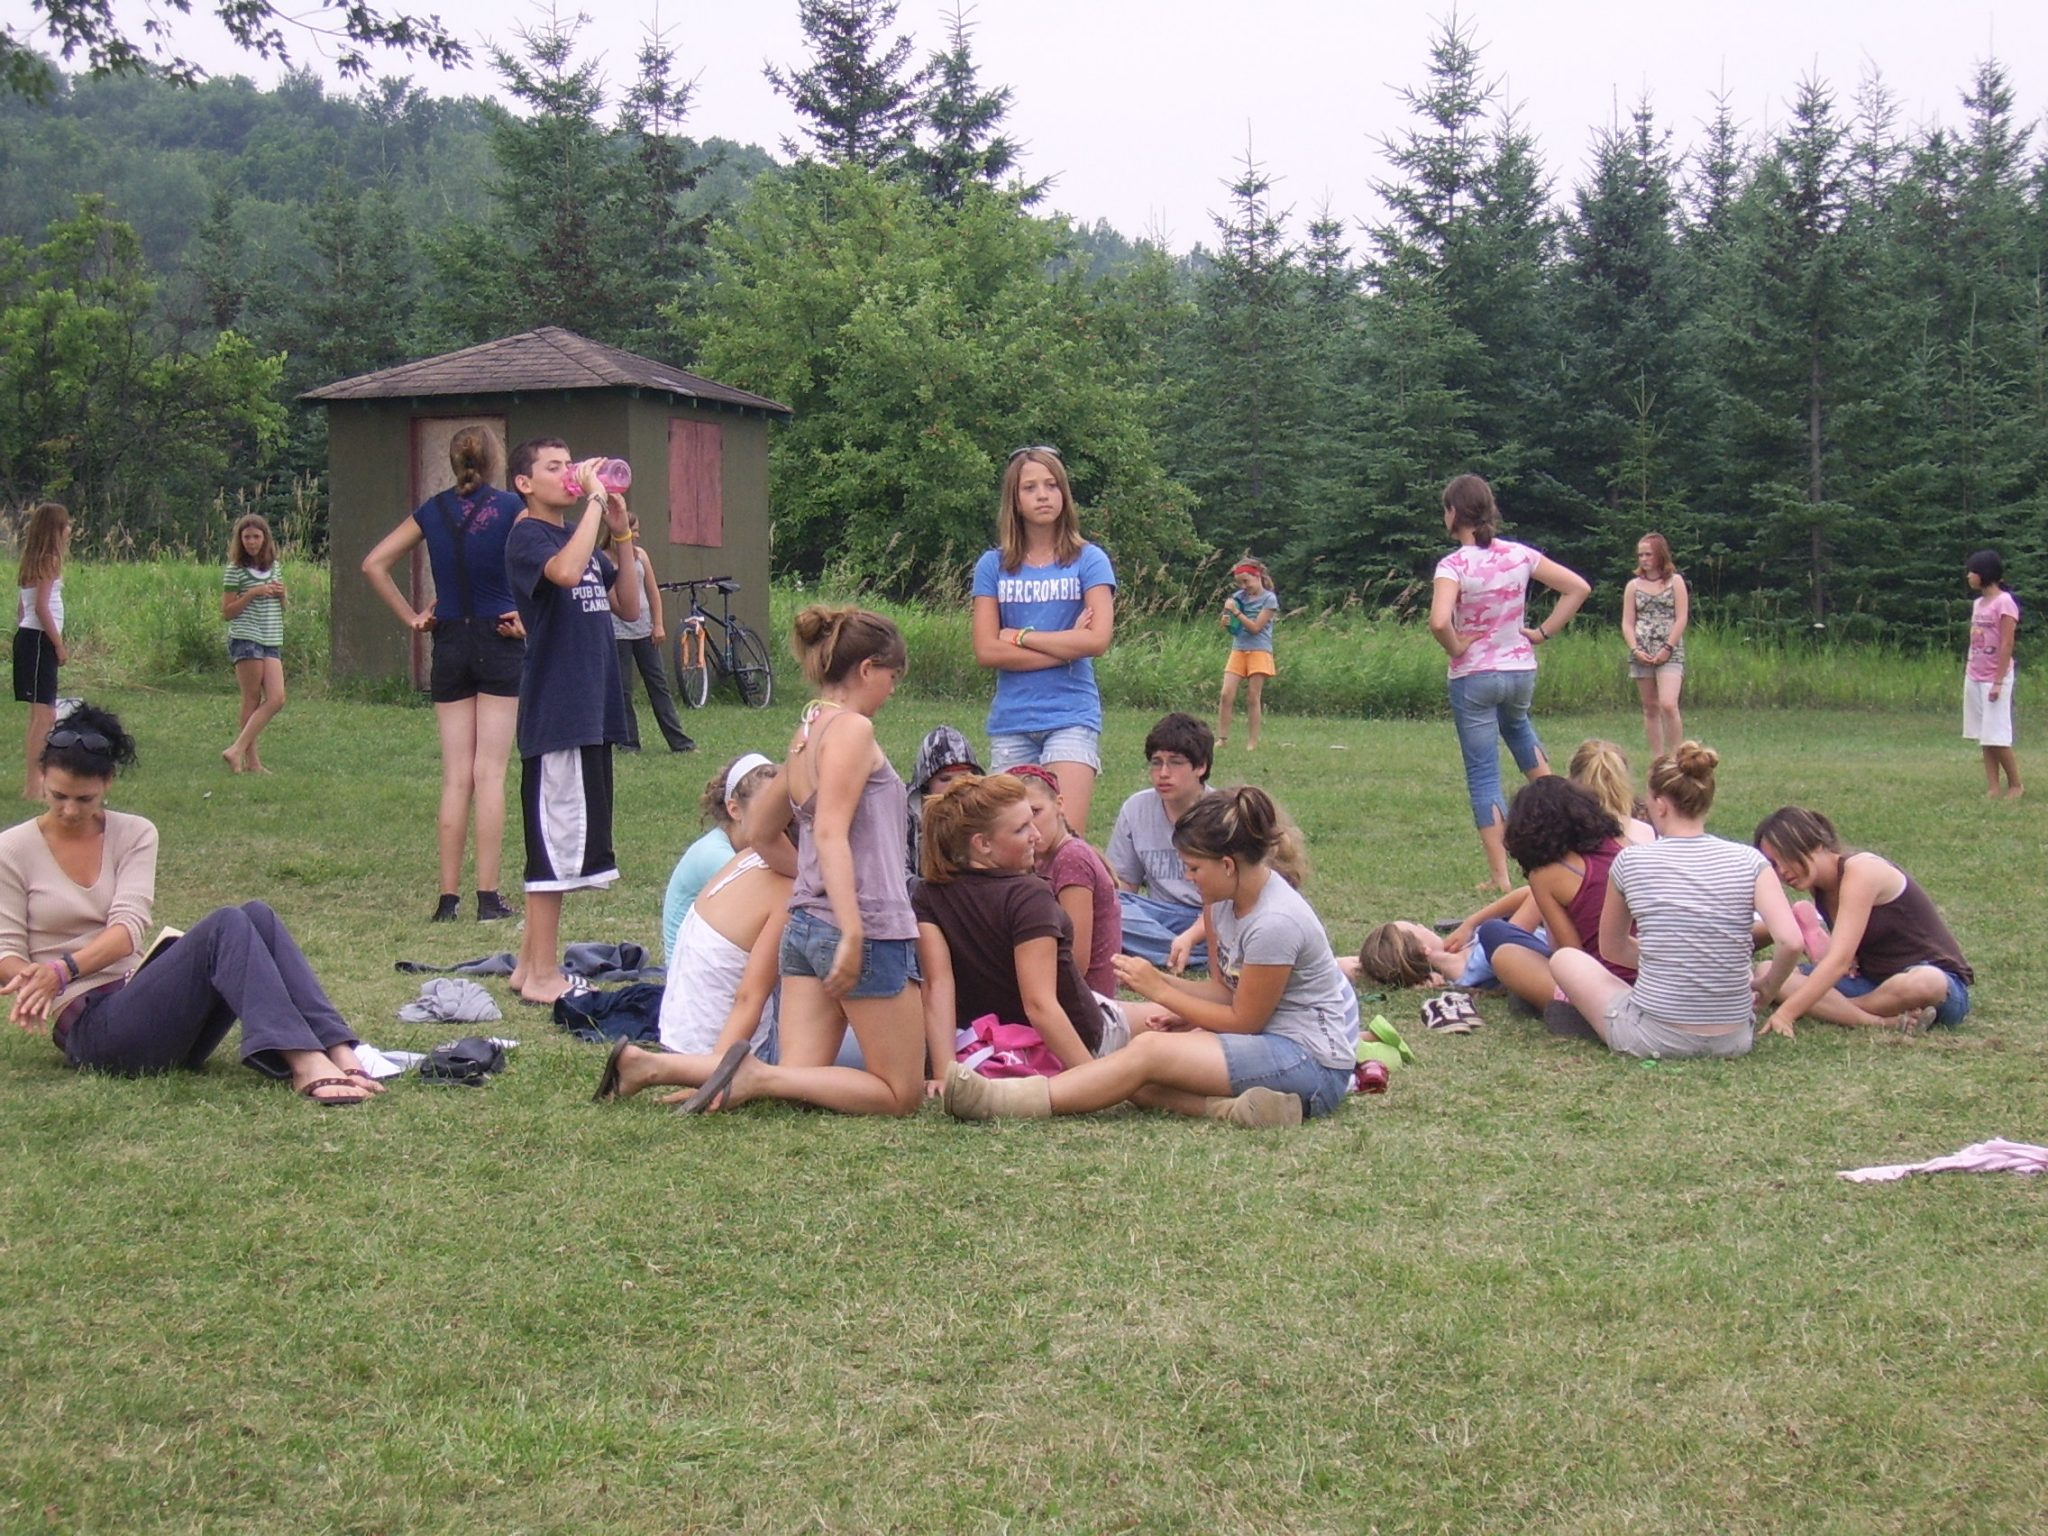 A group of campers hang out in The Hollows Camp field waiting for their next activity